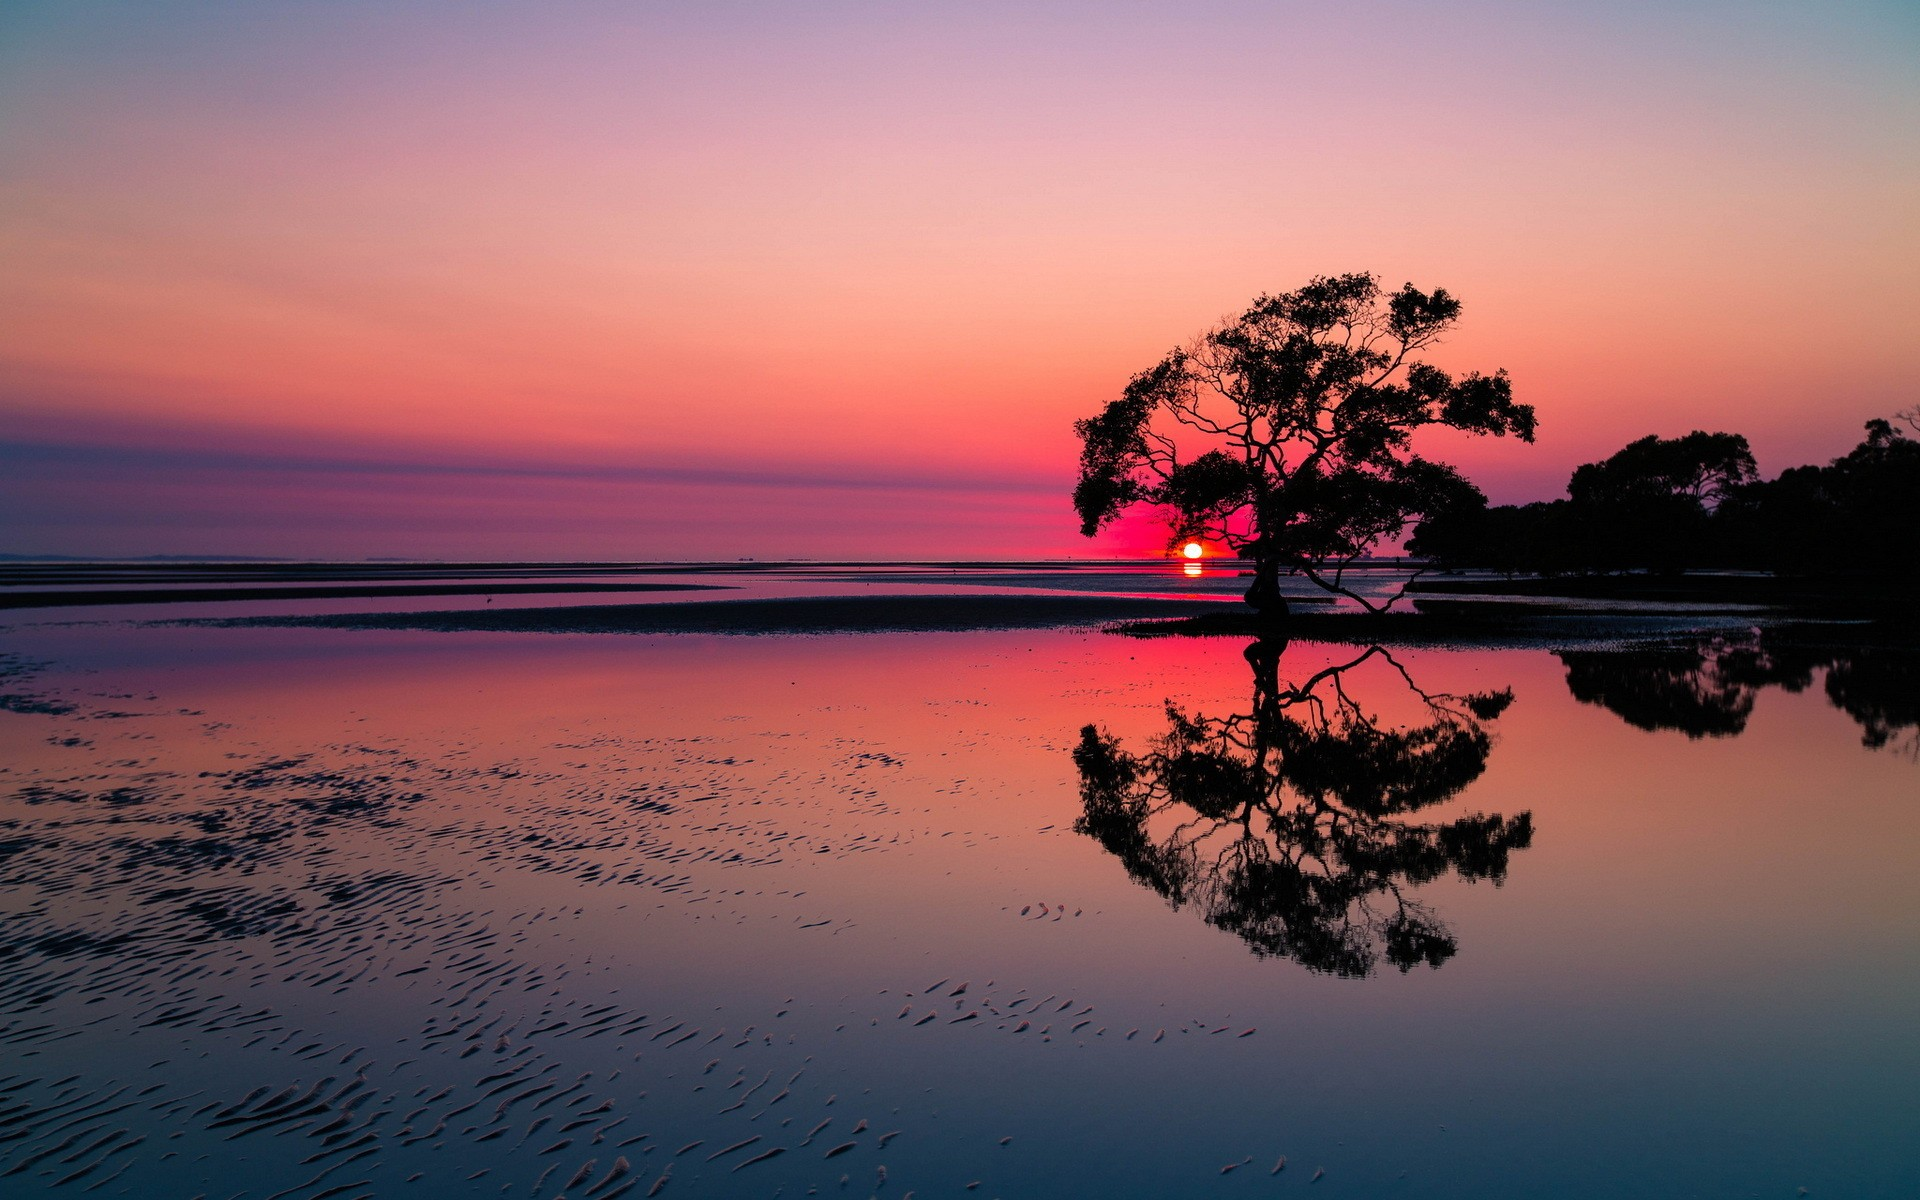 Amazing Wallpapers Hd With Quotes Daily Wallpaper Nudgee Beach Australia I Like To Waste